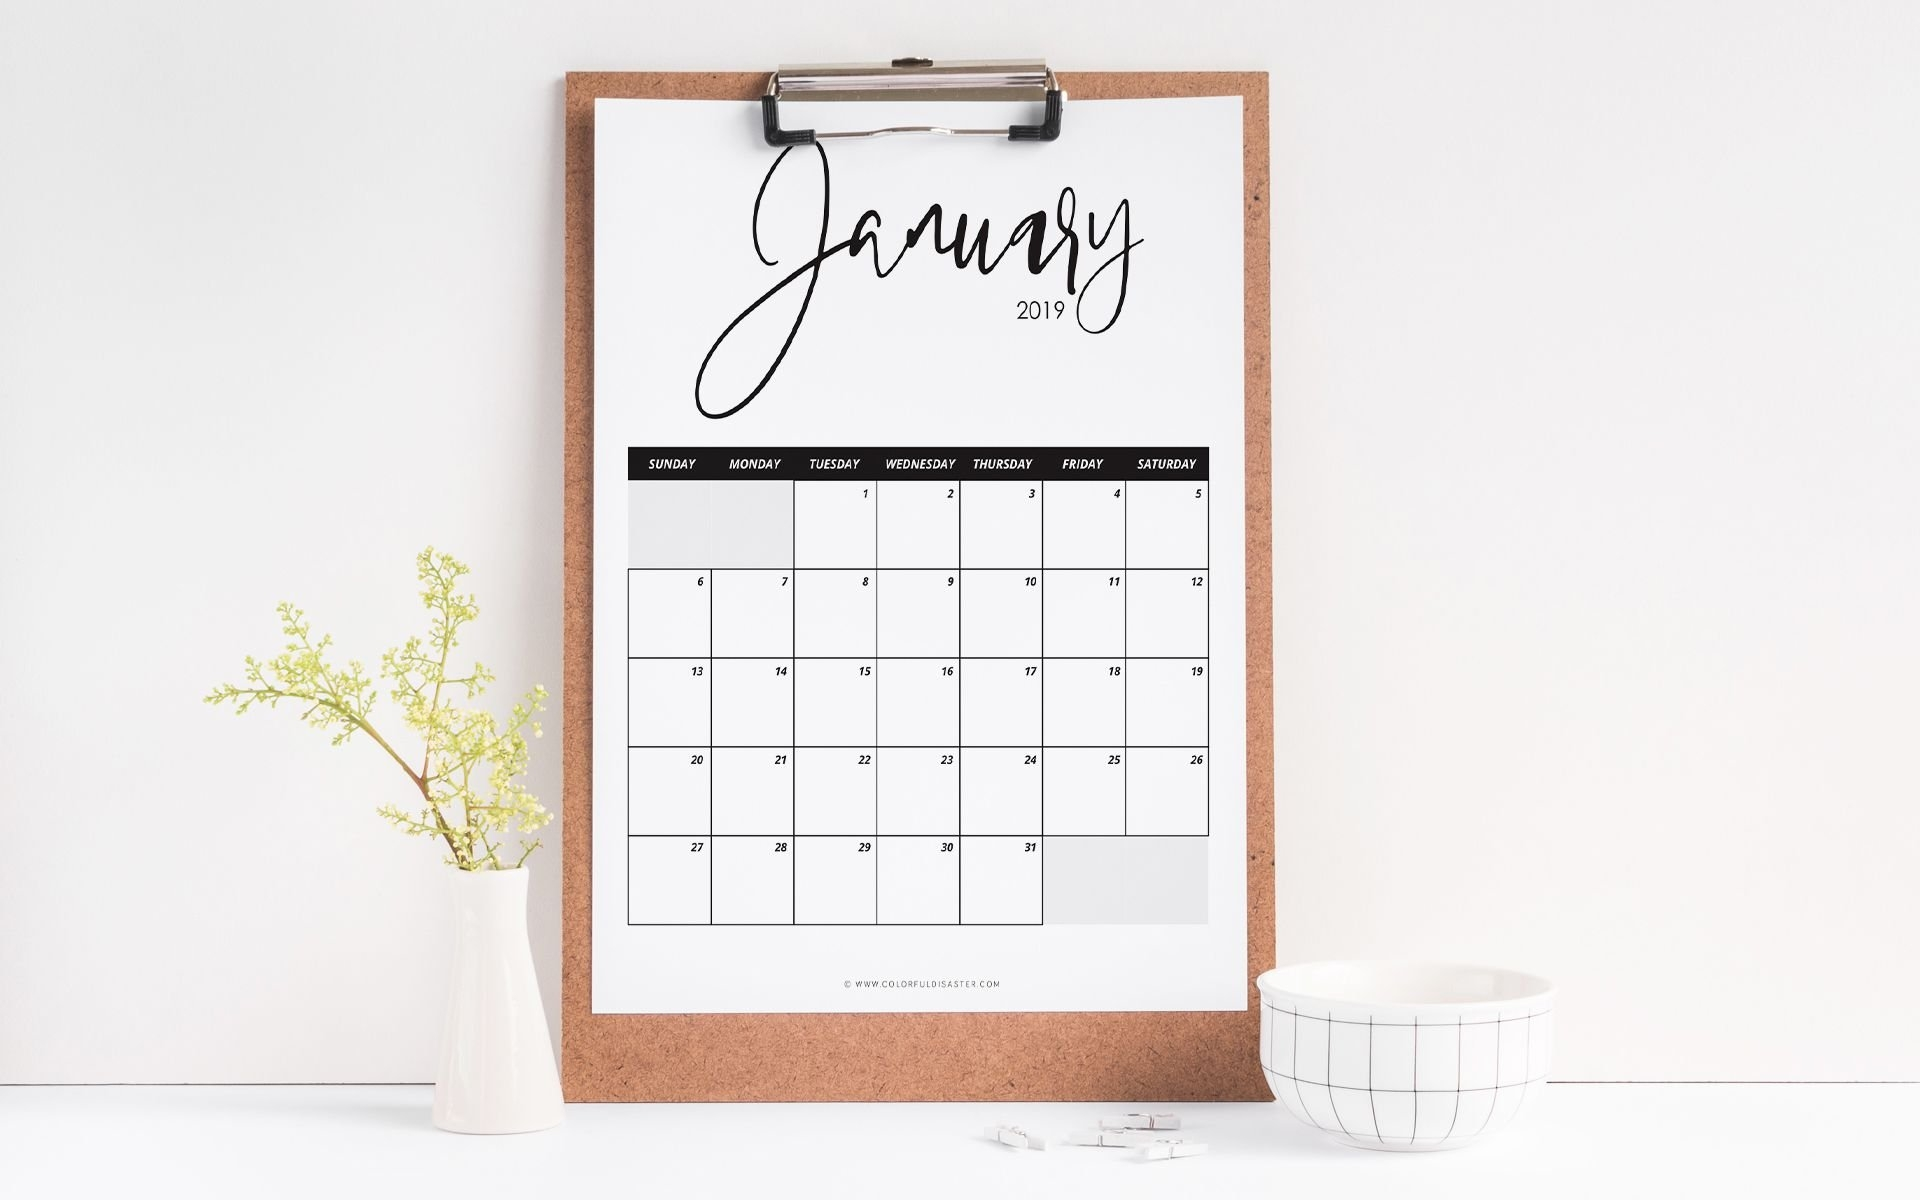 10 Stylish Free, Printable Calendars For 2019 8X10 Calendar 2019